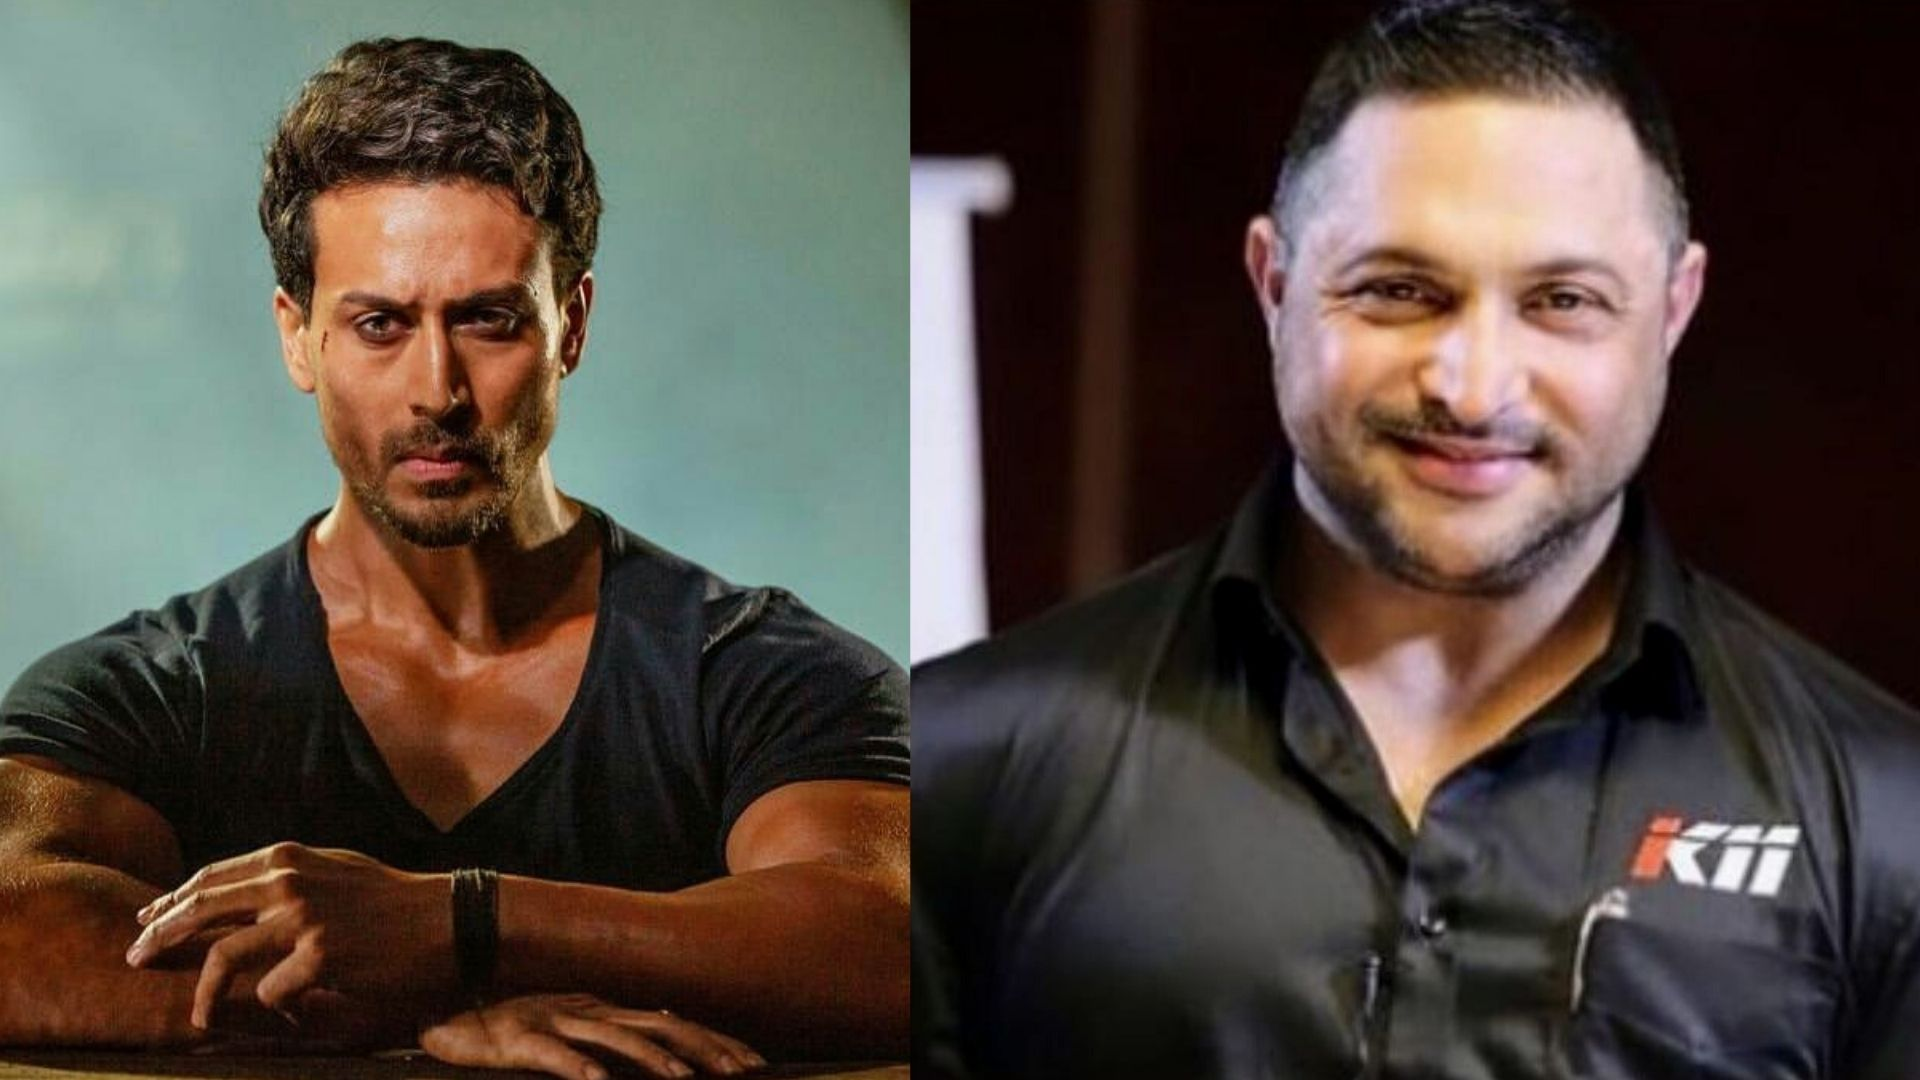 Tiger Shroff's Fitness Trainer Kaizad Kapadia Passes Away; Actor Mourns His Death With An Emotional IG Post